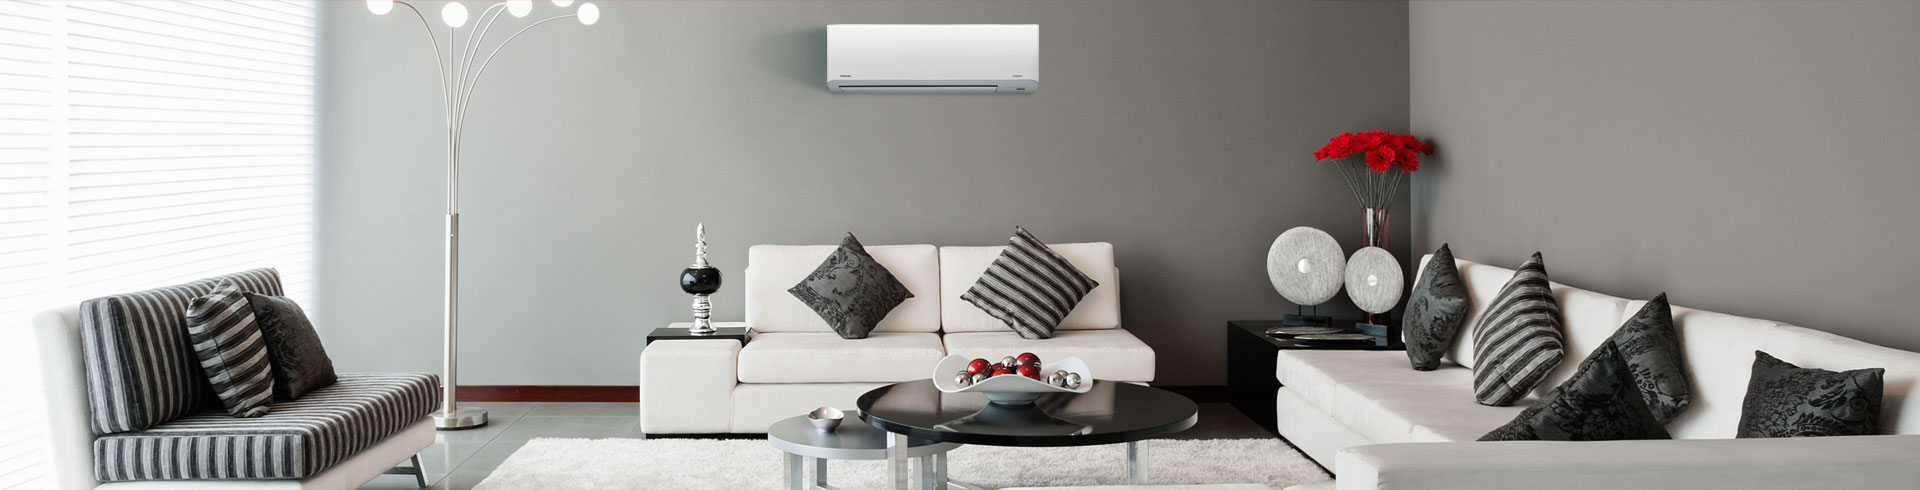 Toshiba Residential Air Conditioning